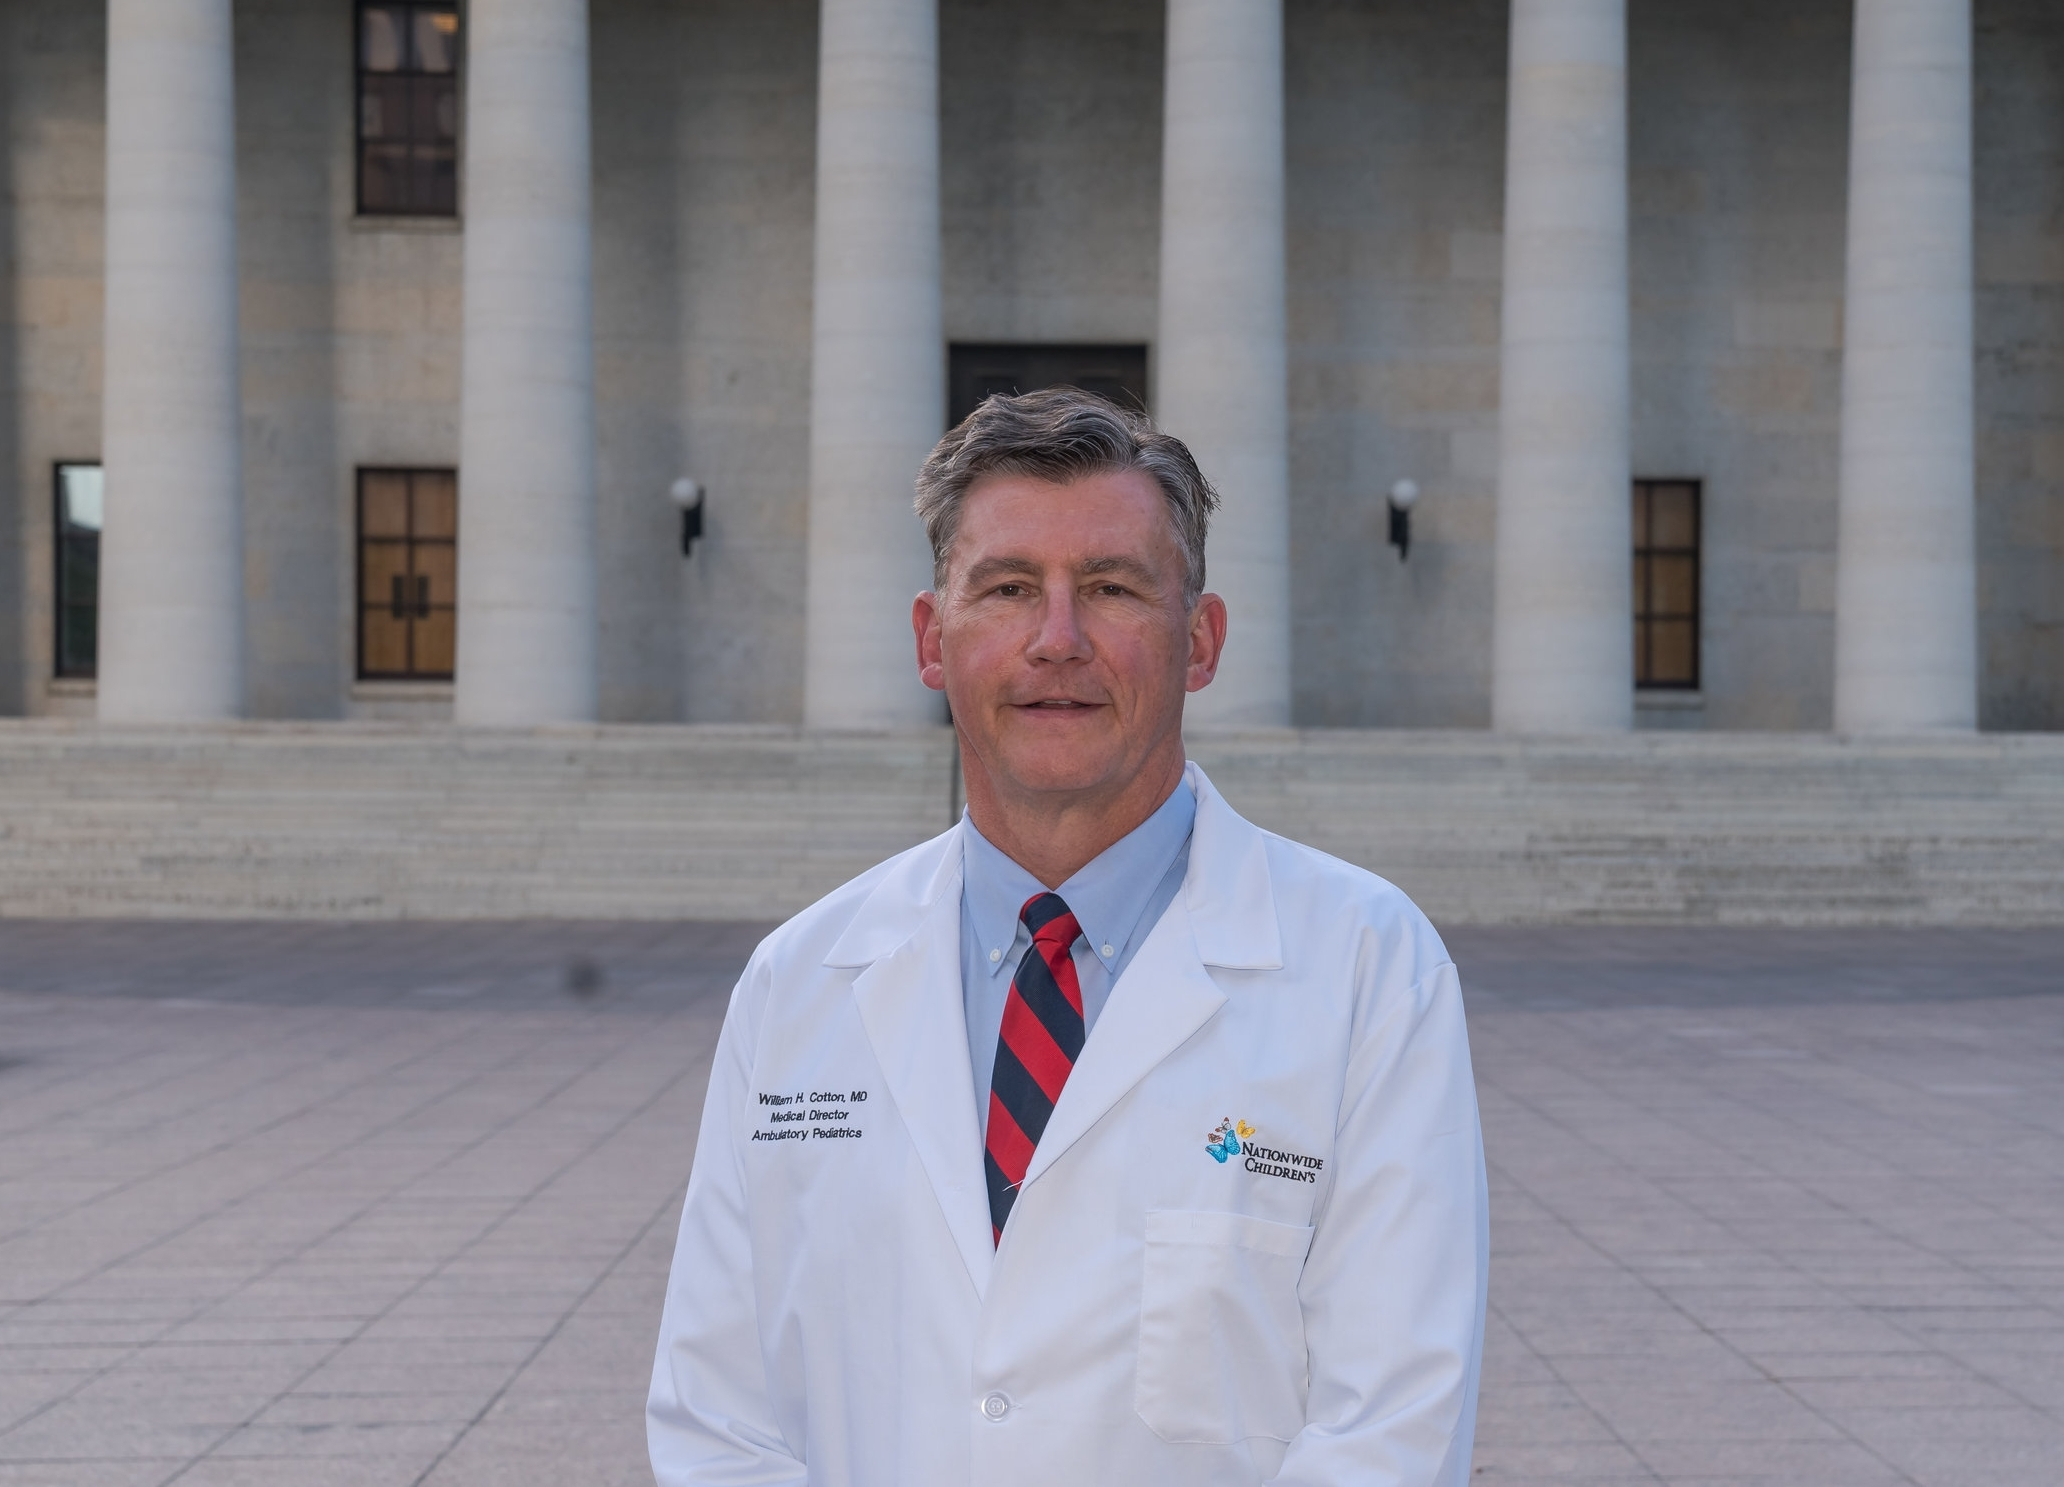 Dr. William Cotton stands in front of the Ohio Statehouse building